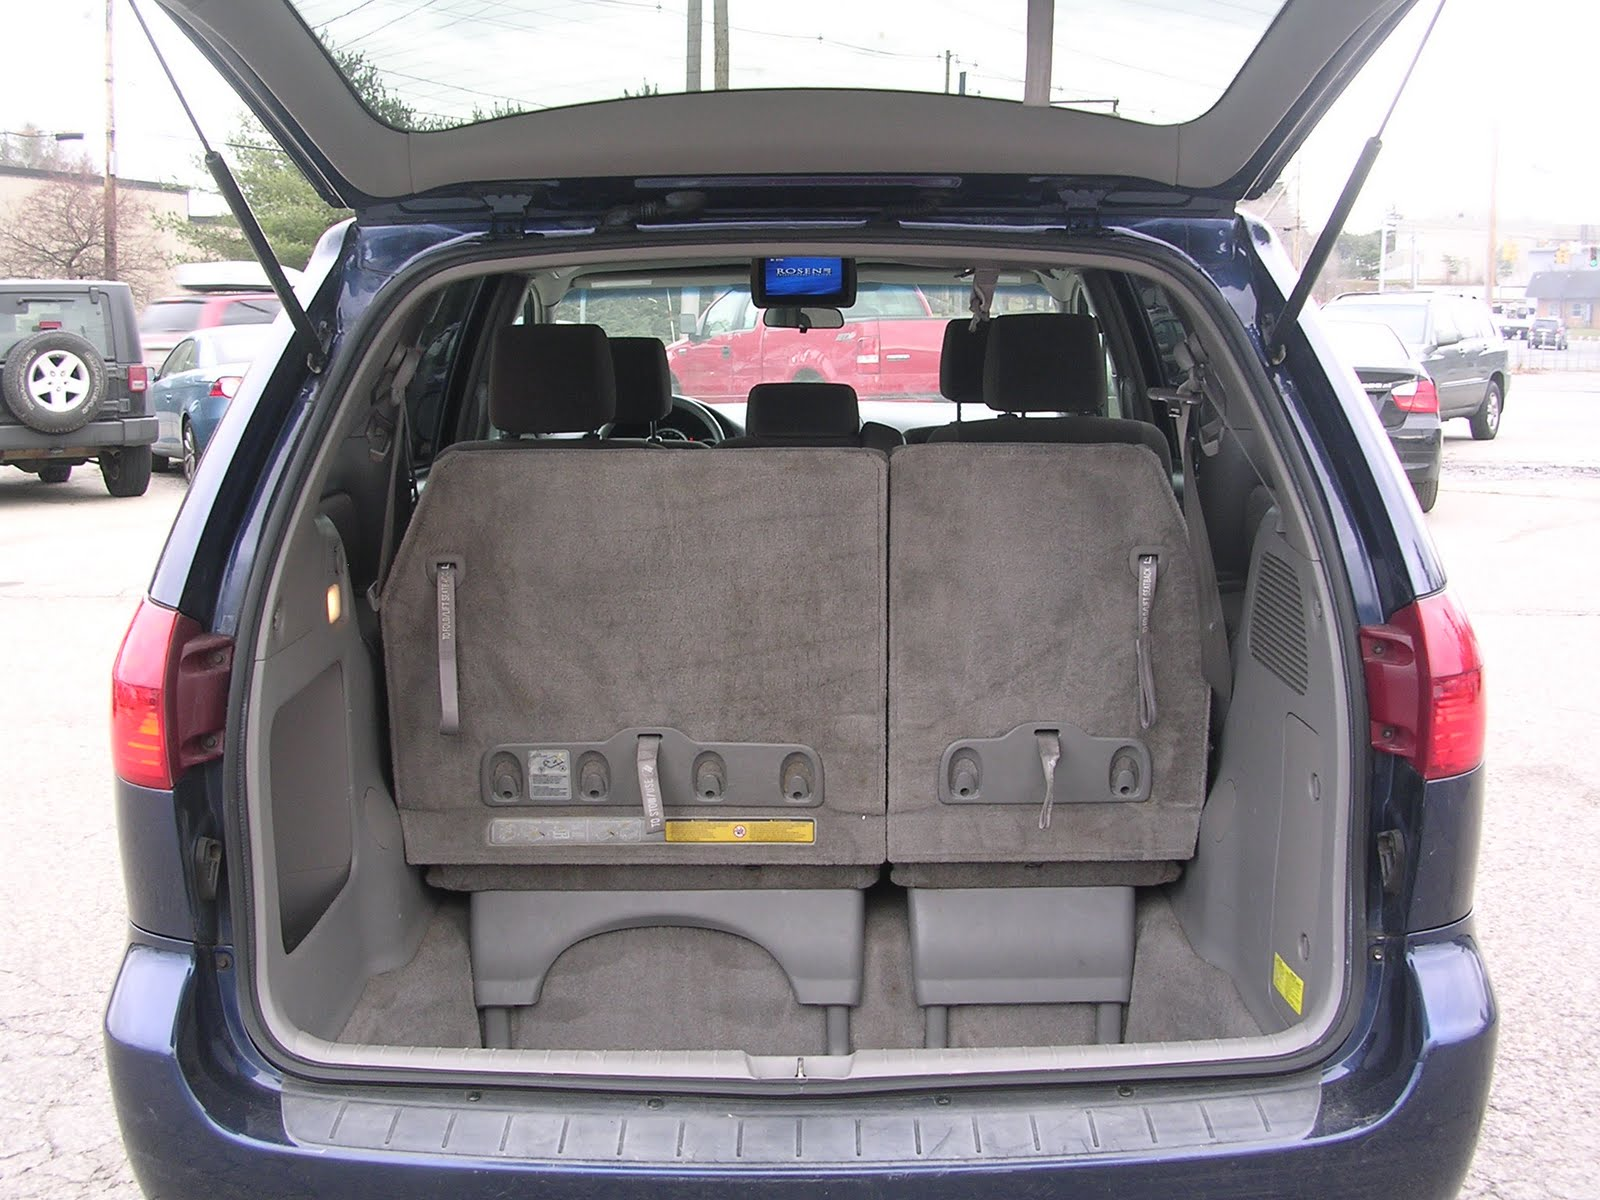 Autos: Http://autos.yahoo.com/toyota/sienna/2005 /le Fwd With 8 Passenger Seating/reviews/